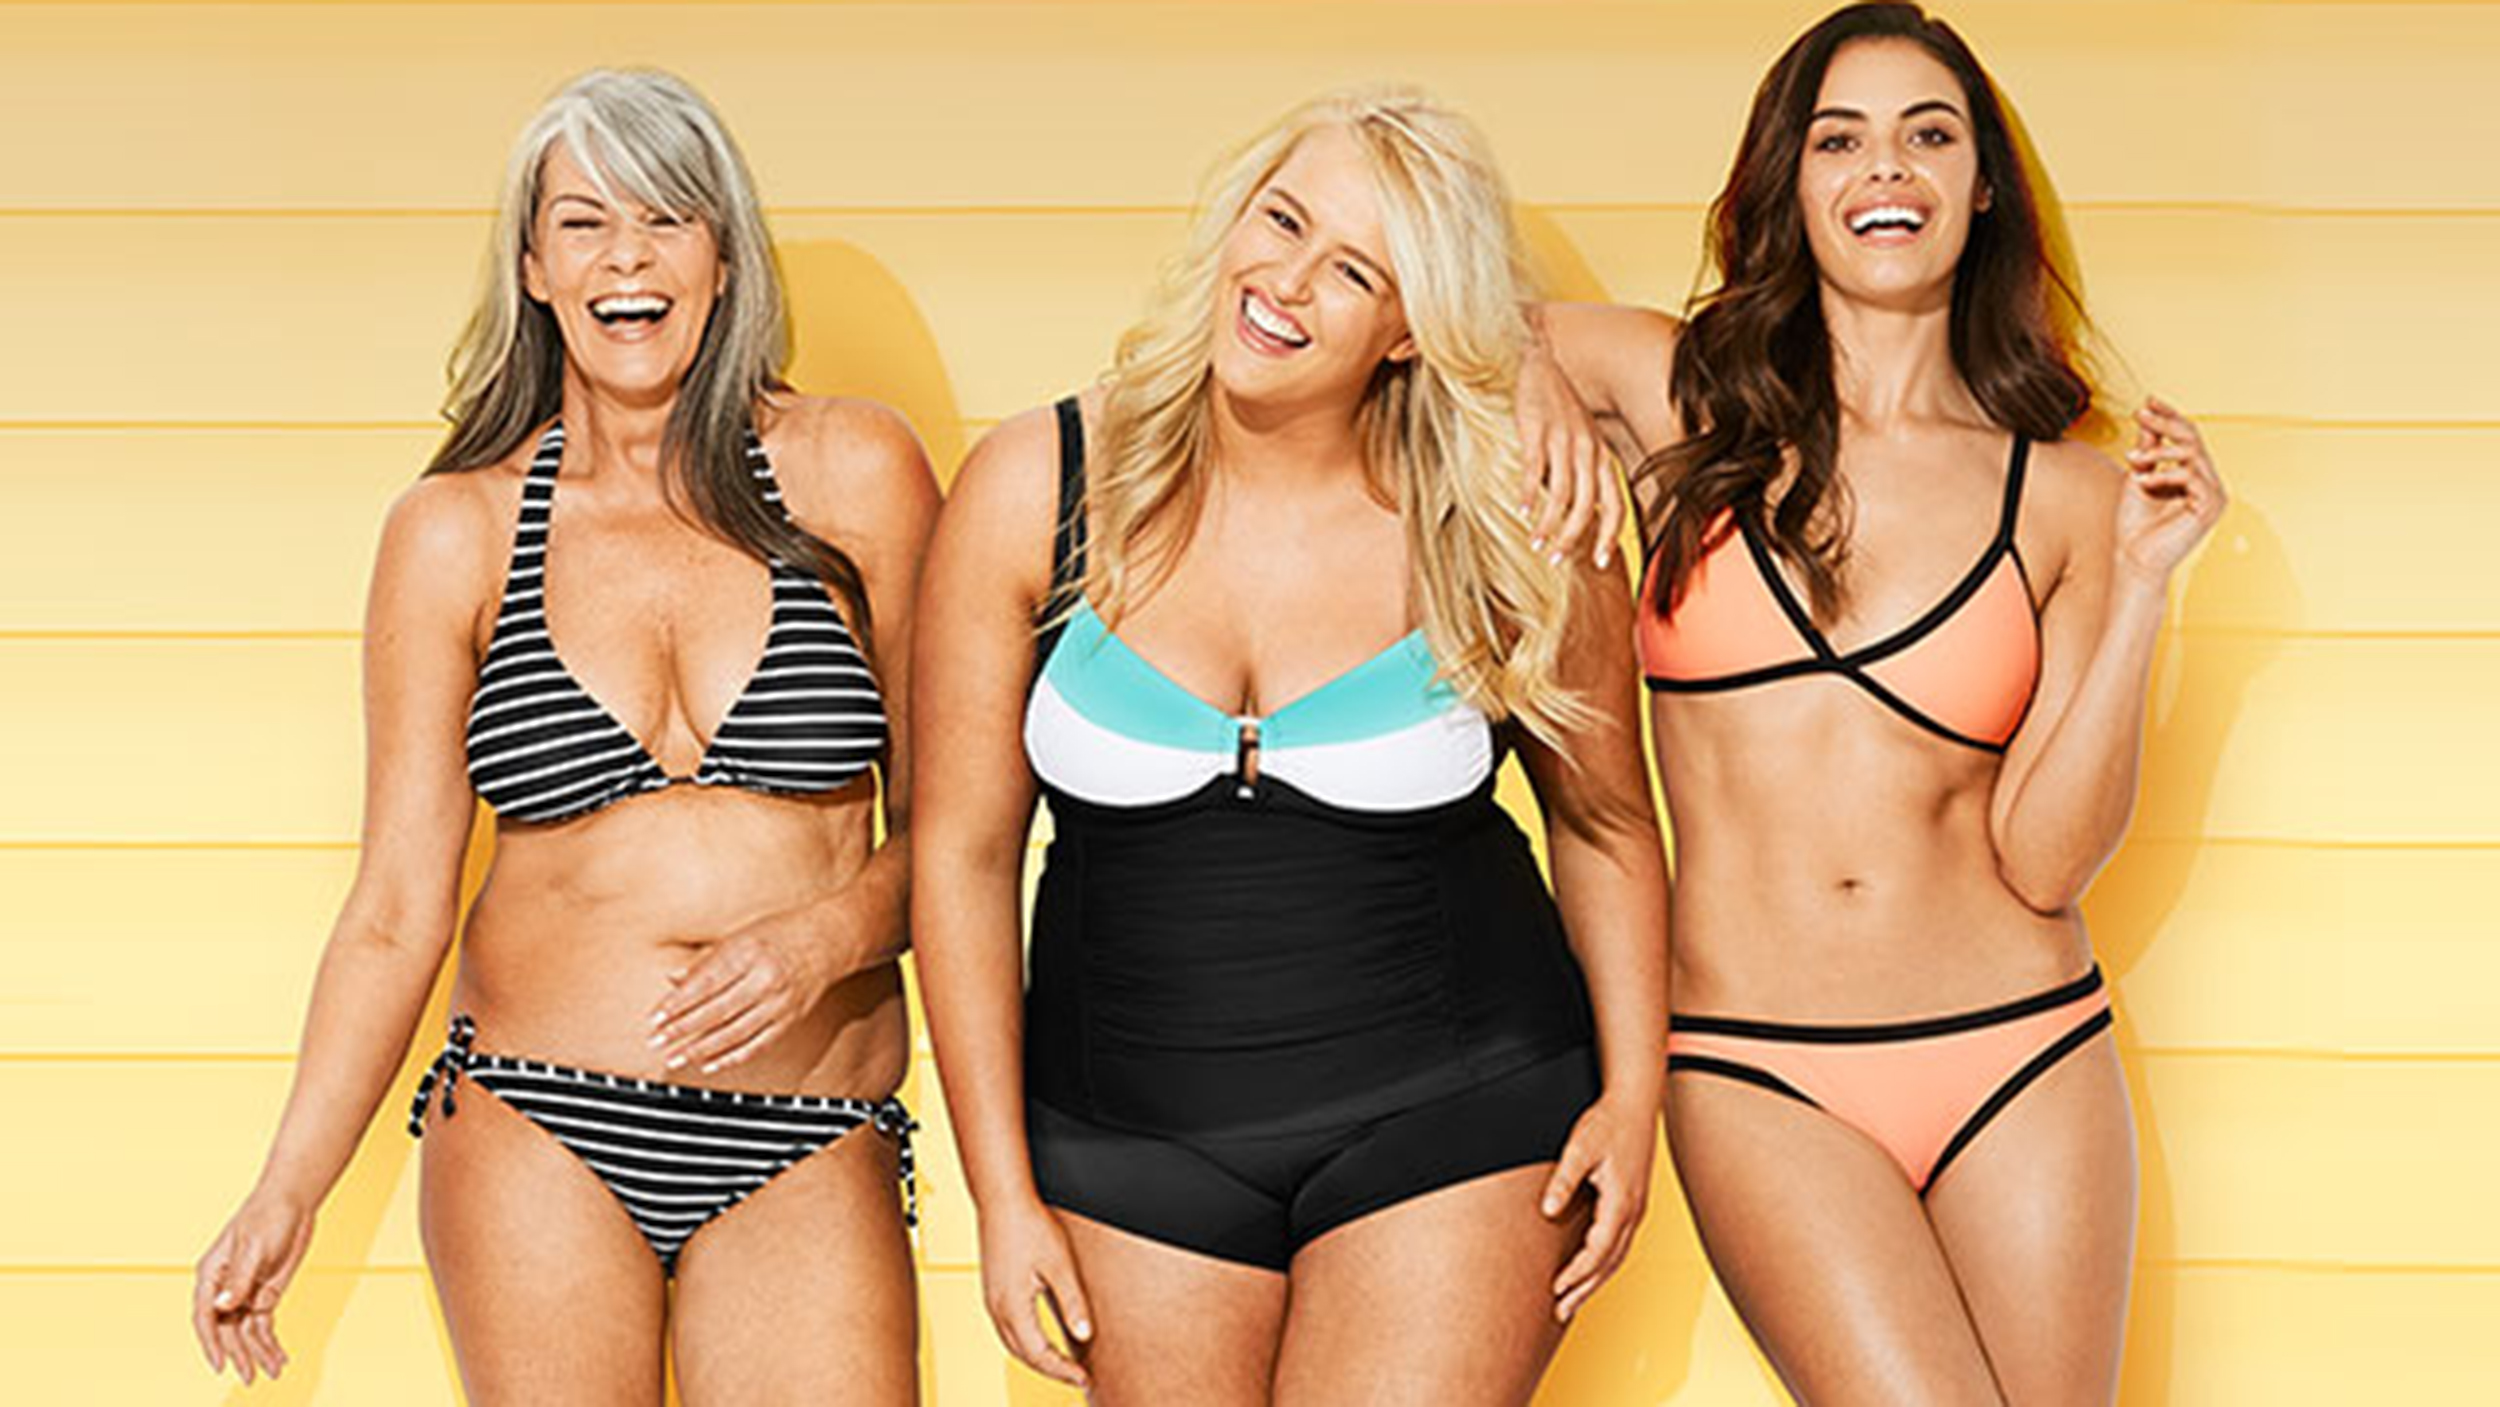 Target Australia promotes body positivity in new swimwear ad ...